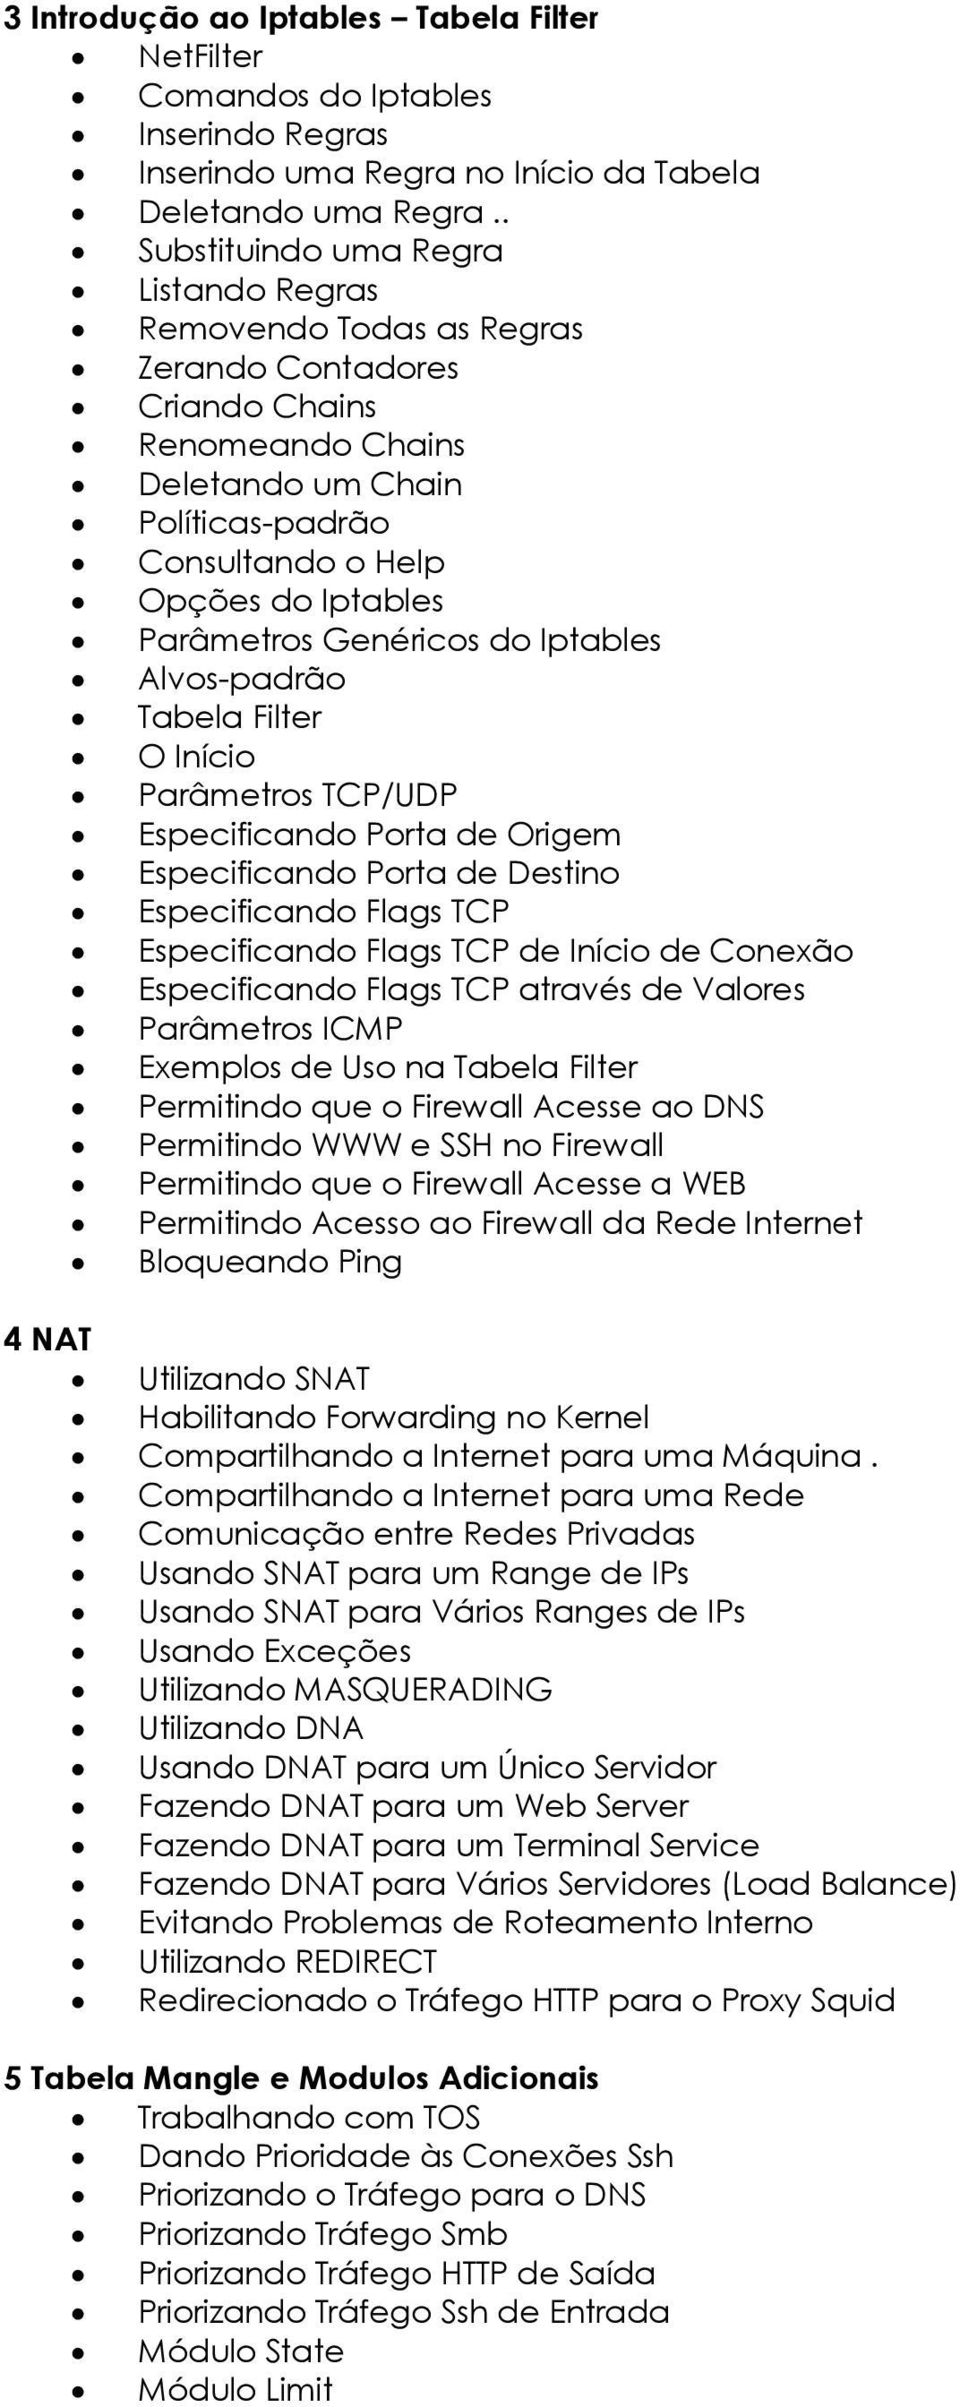 Parâmetros Genéricos do Iptables Alvos-padrão Tabela Filter O Início Parâmetros TCP/UDP Especificando Porta de Origem Especificando Porta de Destino Especificando Flags TCP Especificando Flags TCP de